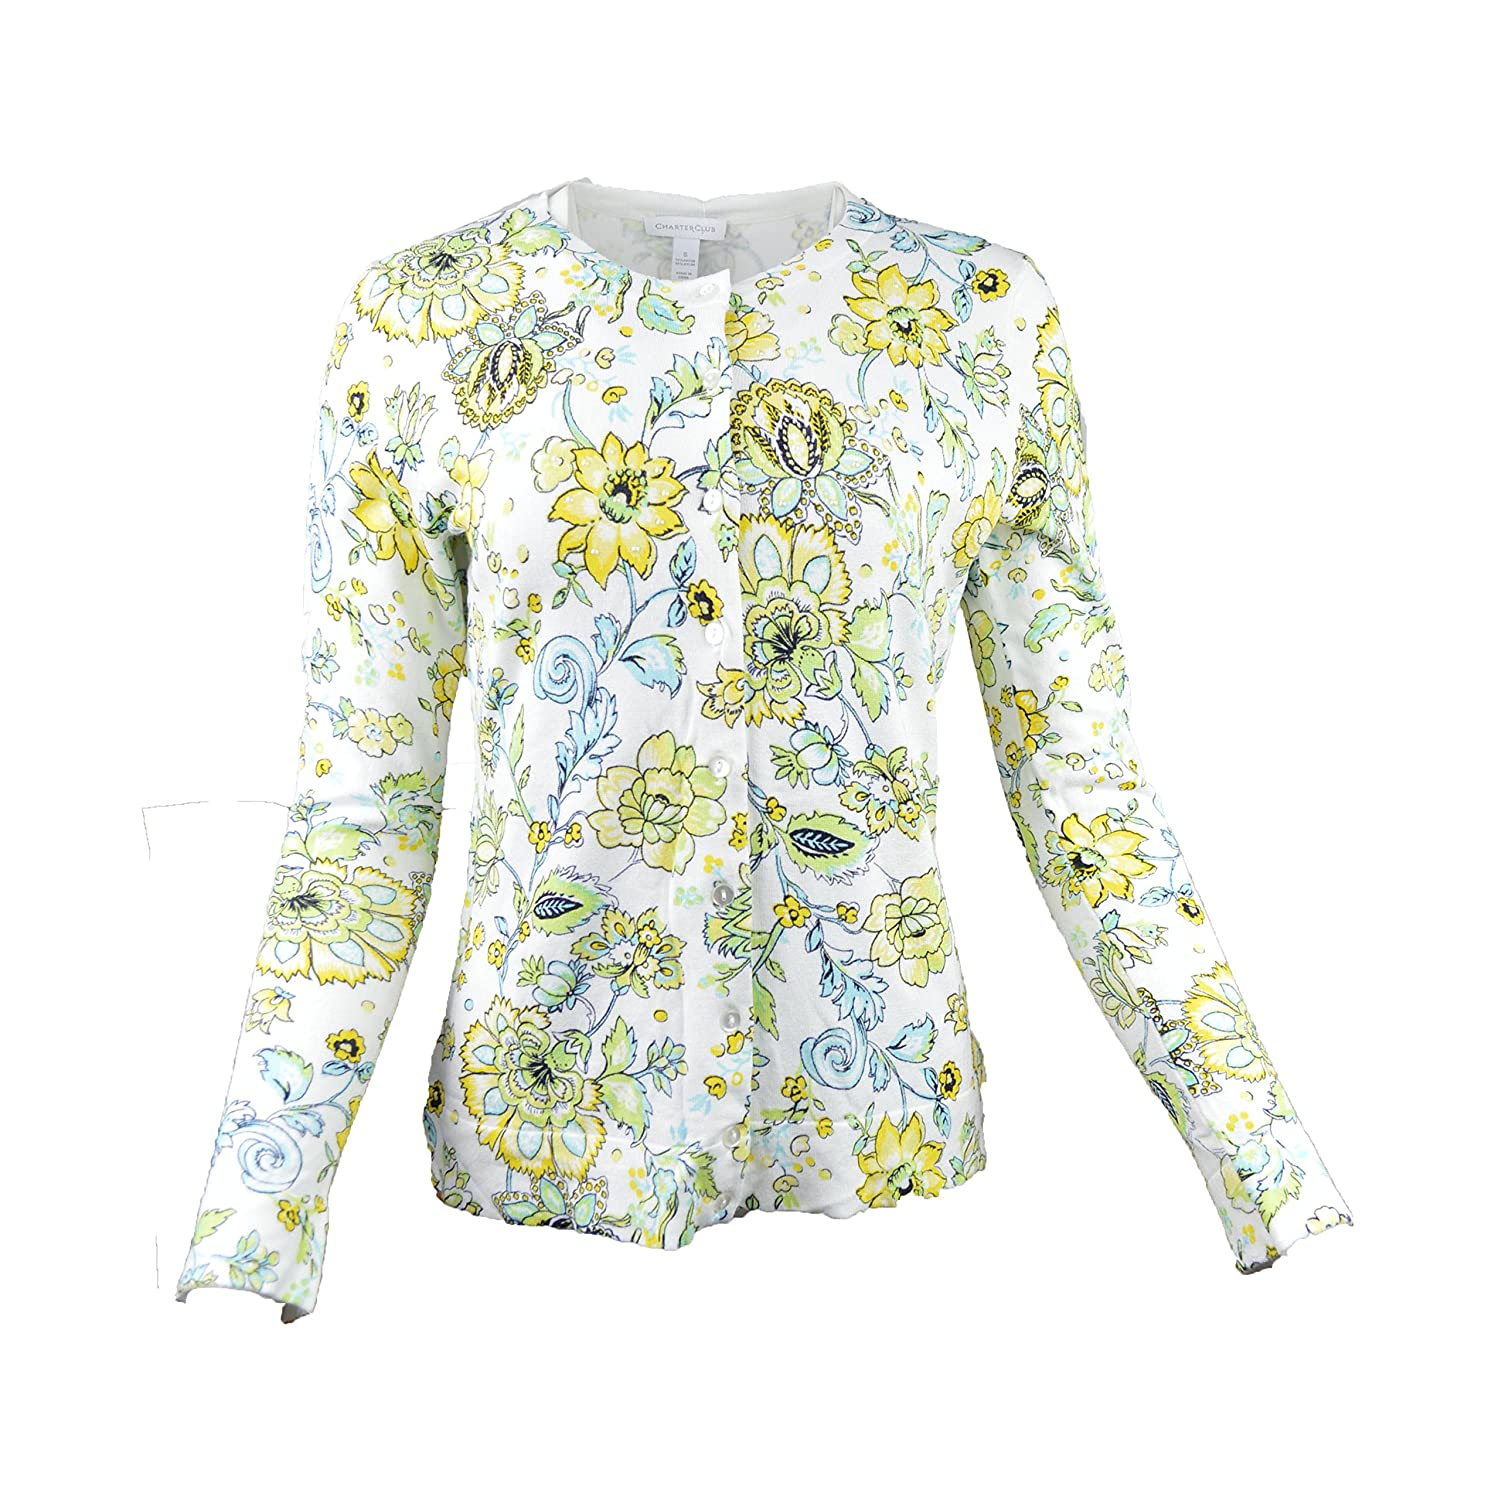 Charter Club Women's Button-front Floral Cardigan Bright White XL